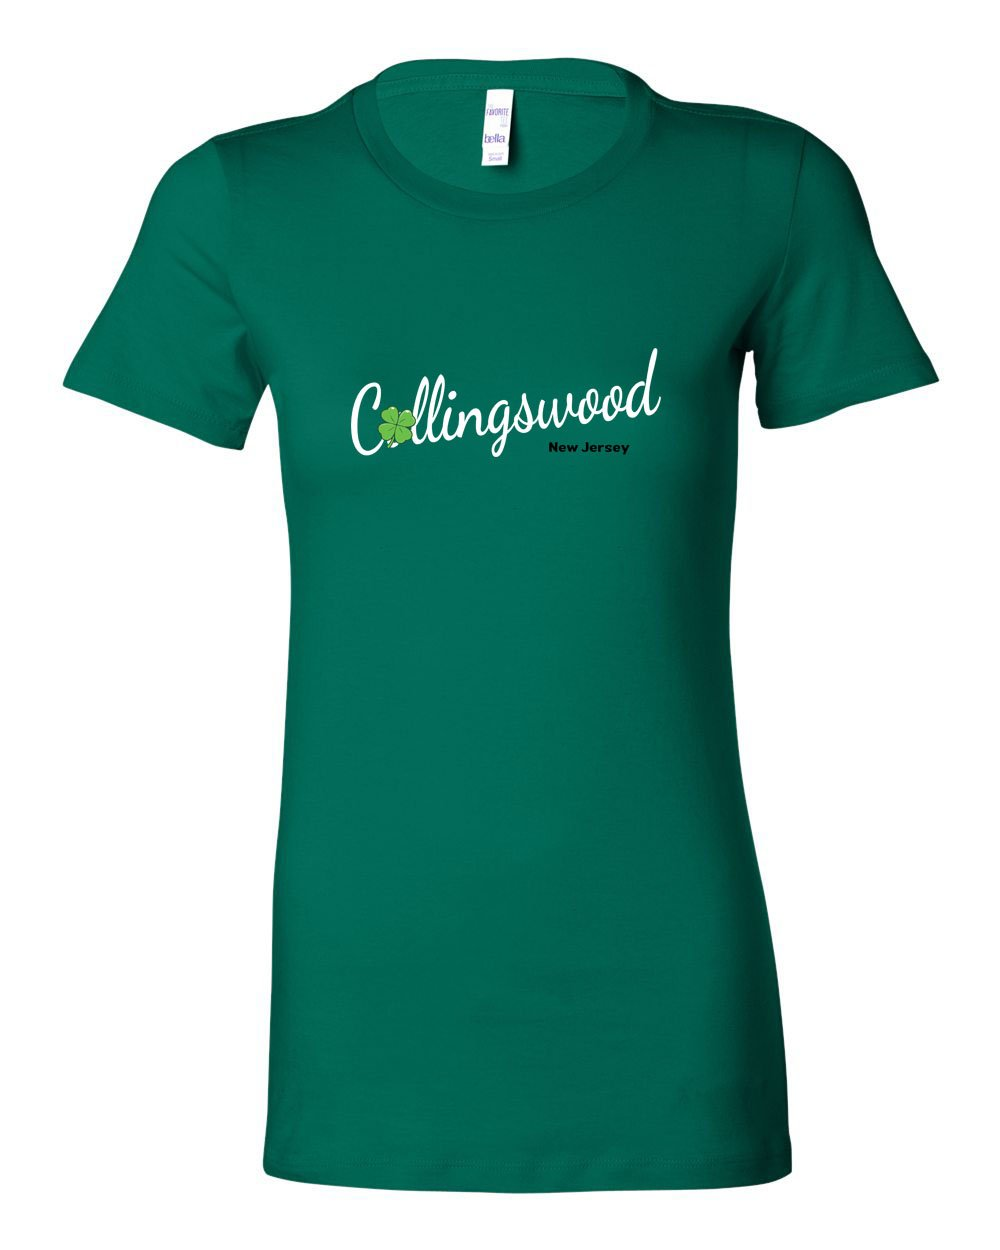 Irish Collingswood LADIES Junior-Fit T-Shirt